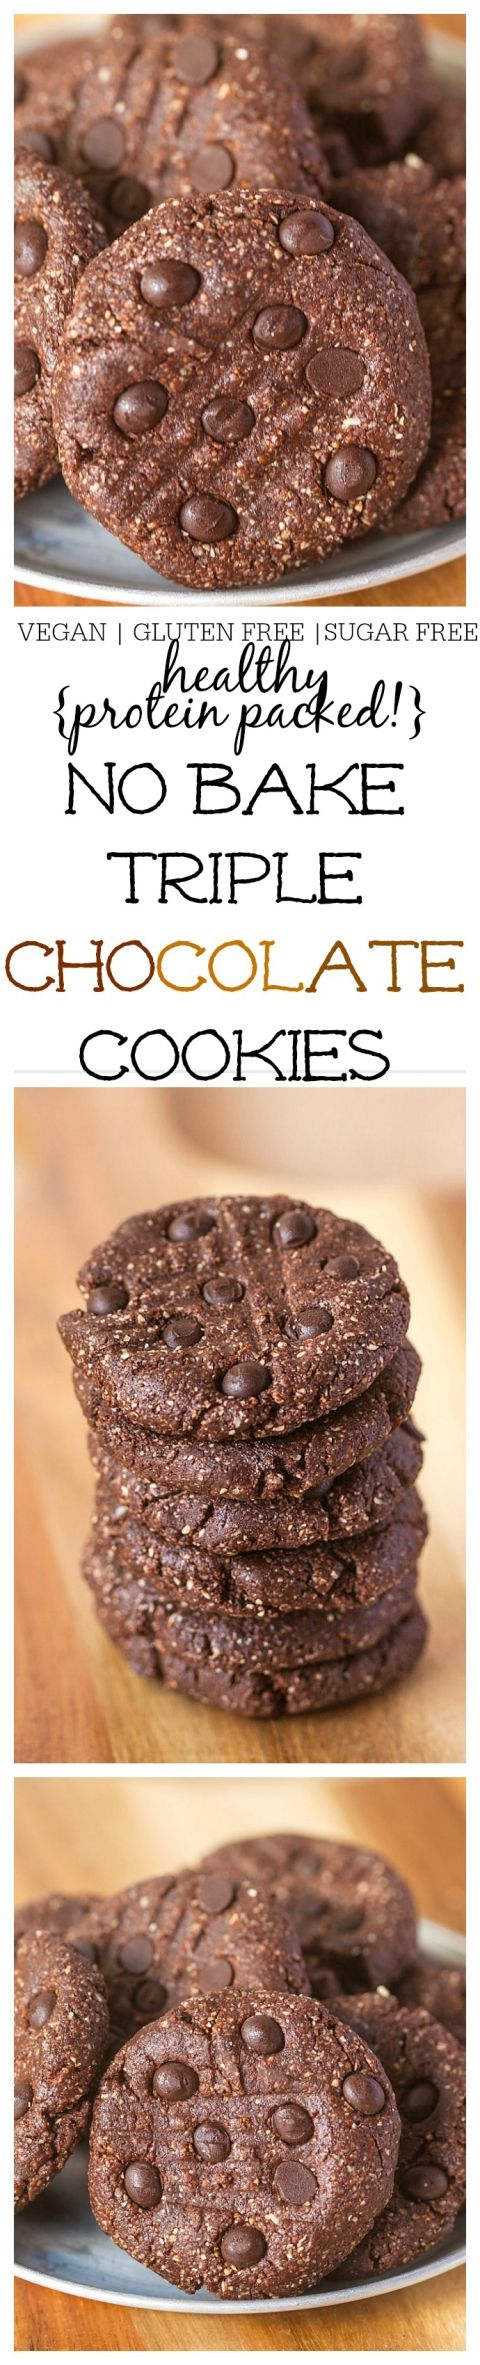 Healthy {protein packed!} No Bake Triple Chocolate Cookies-These healthy no bake triple chocolate protein cookies are the perfect snack to keep you satisfied or fuel you up for your day- High in protein, gluten free, sugar free and completely vegan- These no bake snacks take less than 10 minutes to whip up! @thebigmansworld - thebigmansworld.com